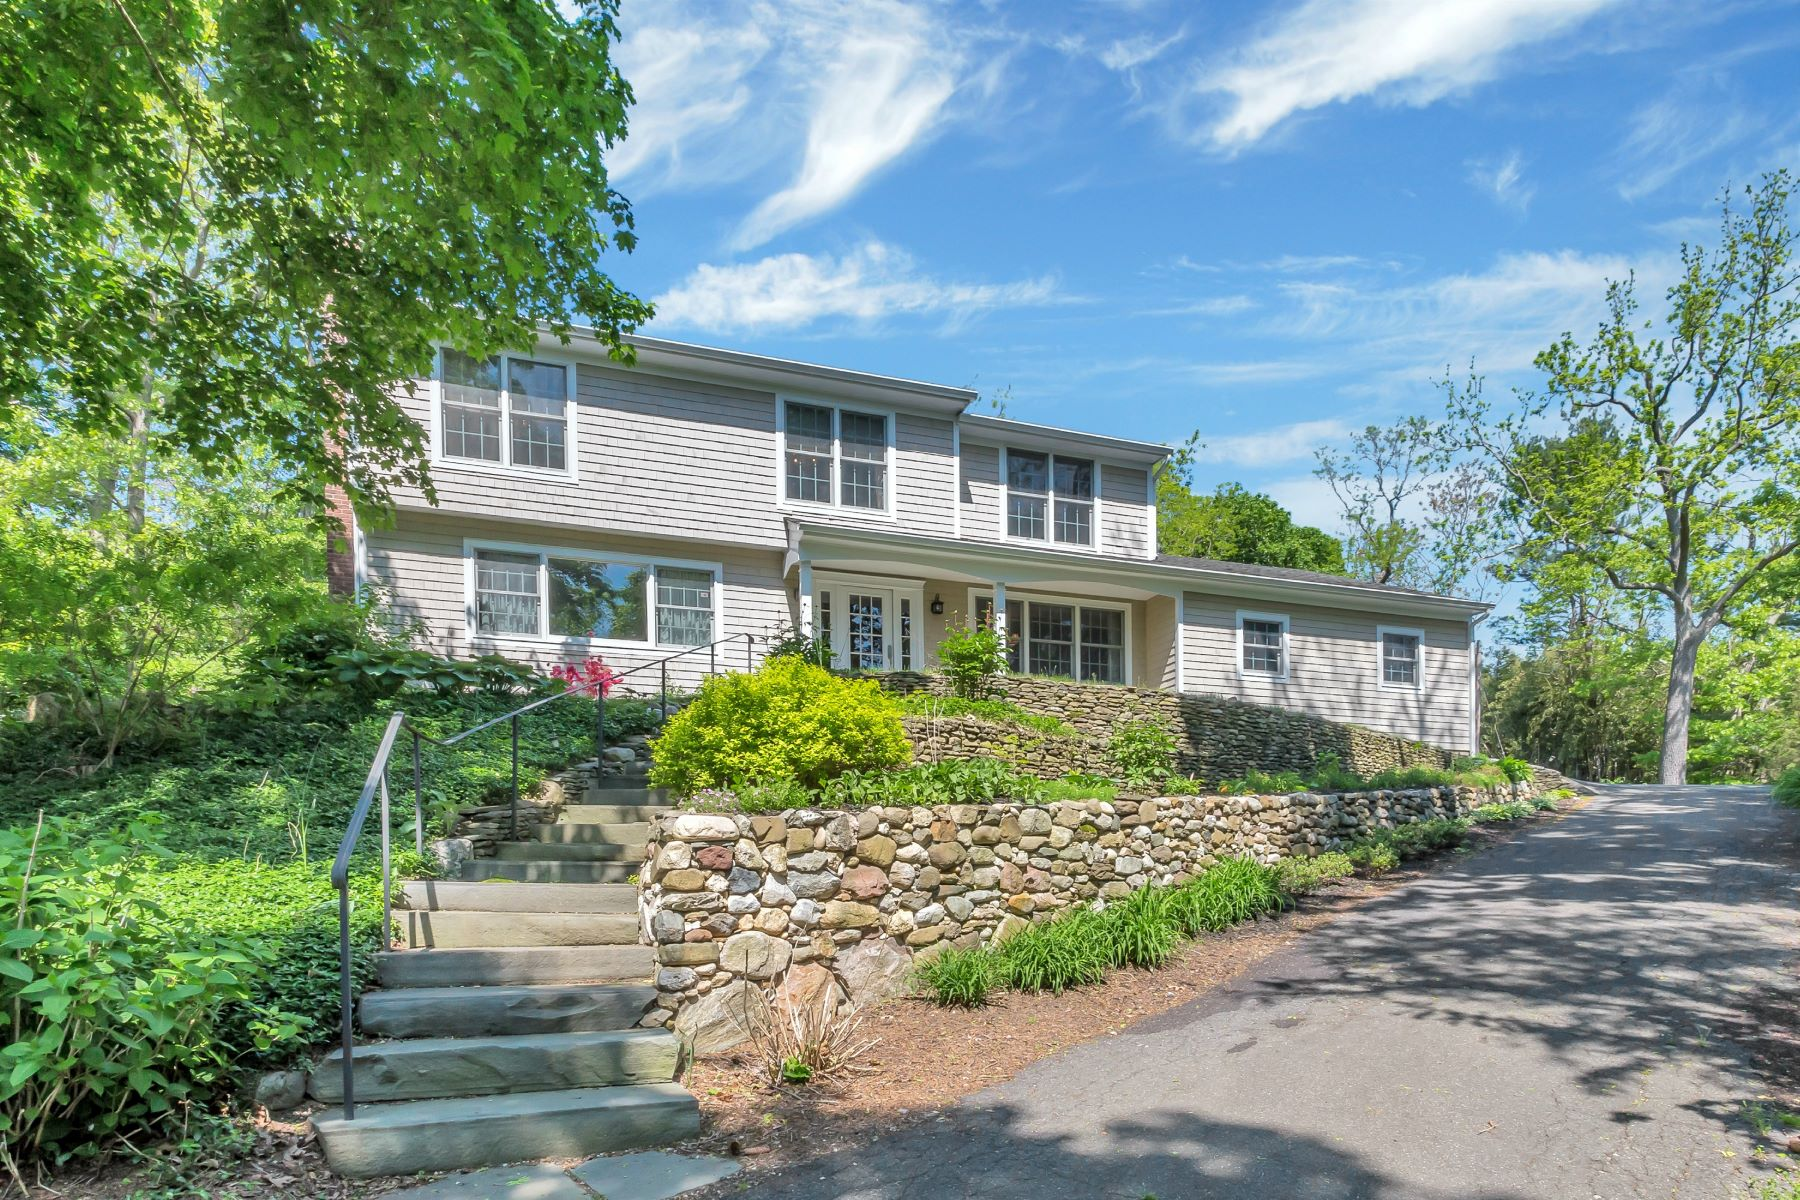 واحد منزل الأسرة للـ Sale في 24 Lake St 24 Lake St, Setauket, New York, 11733 United States